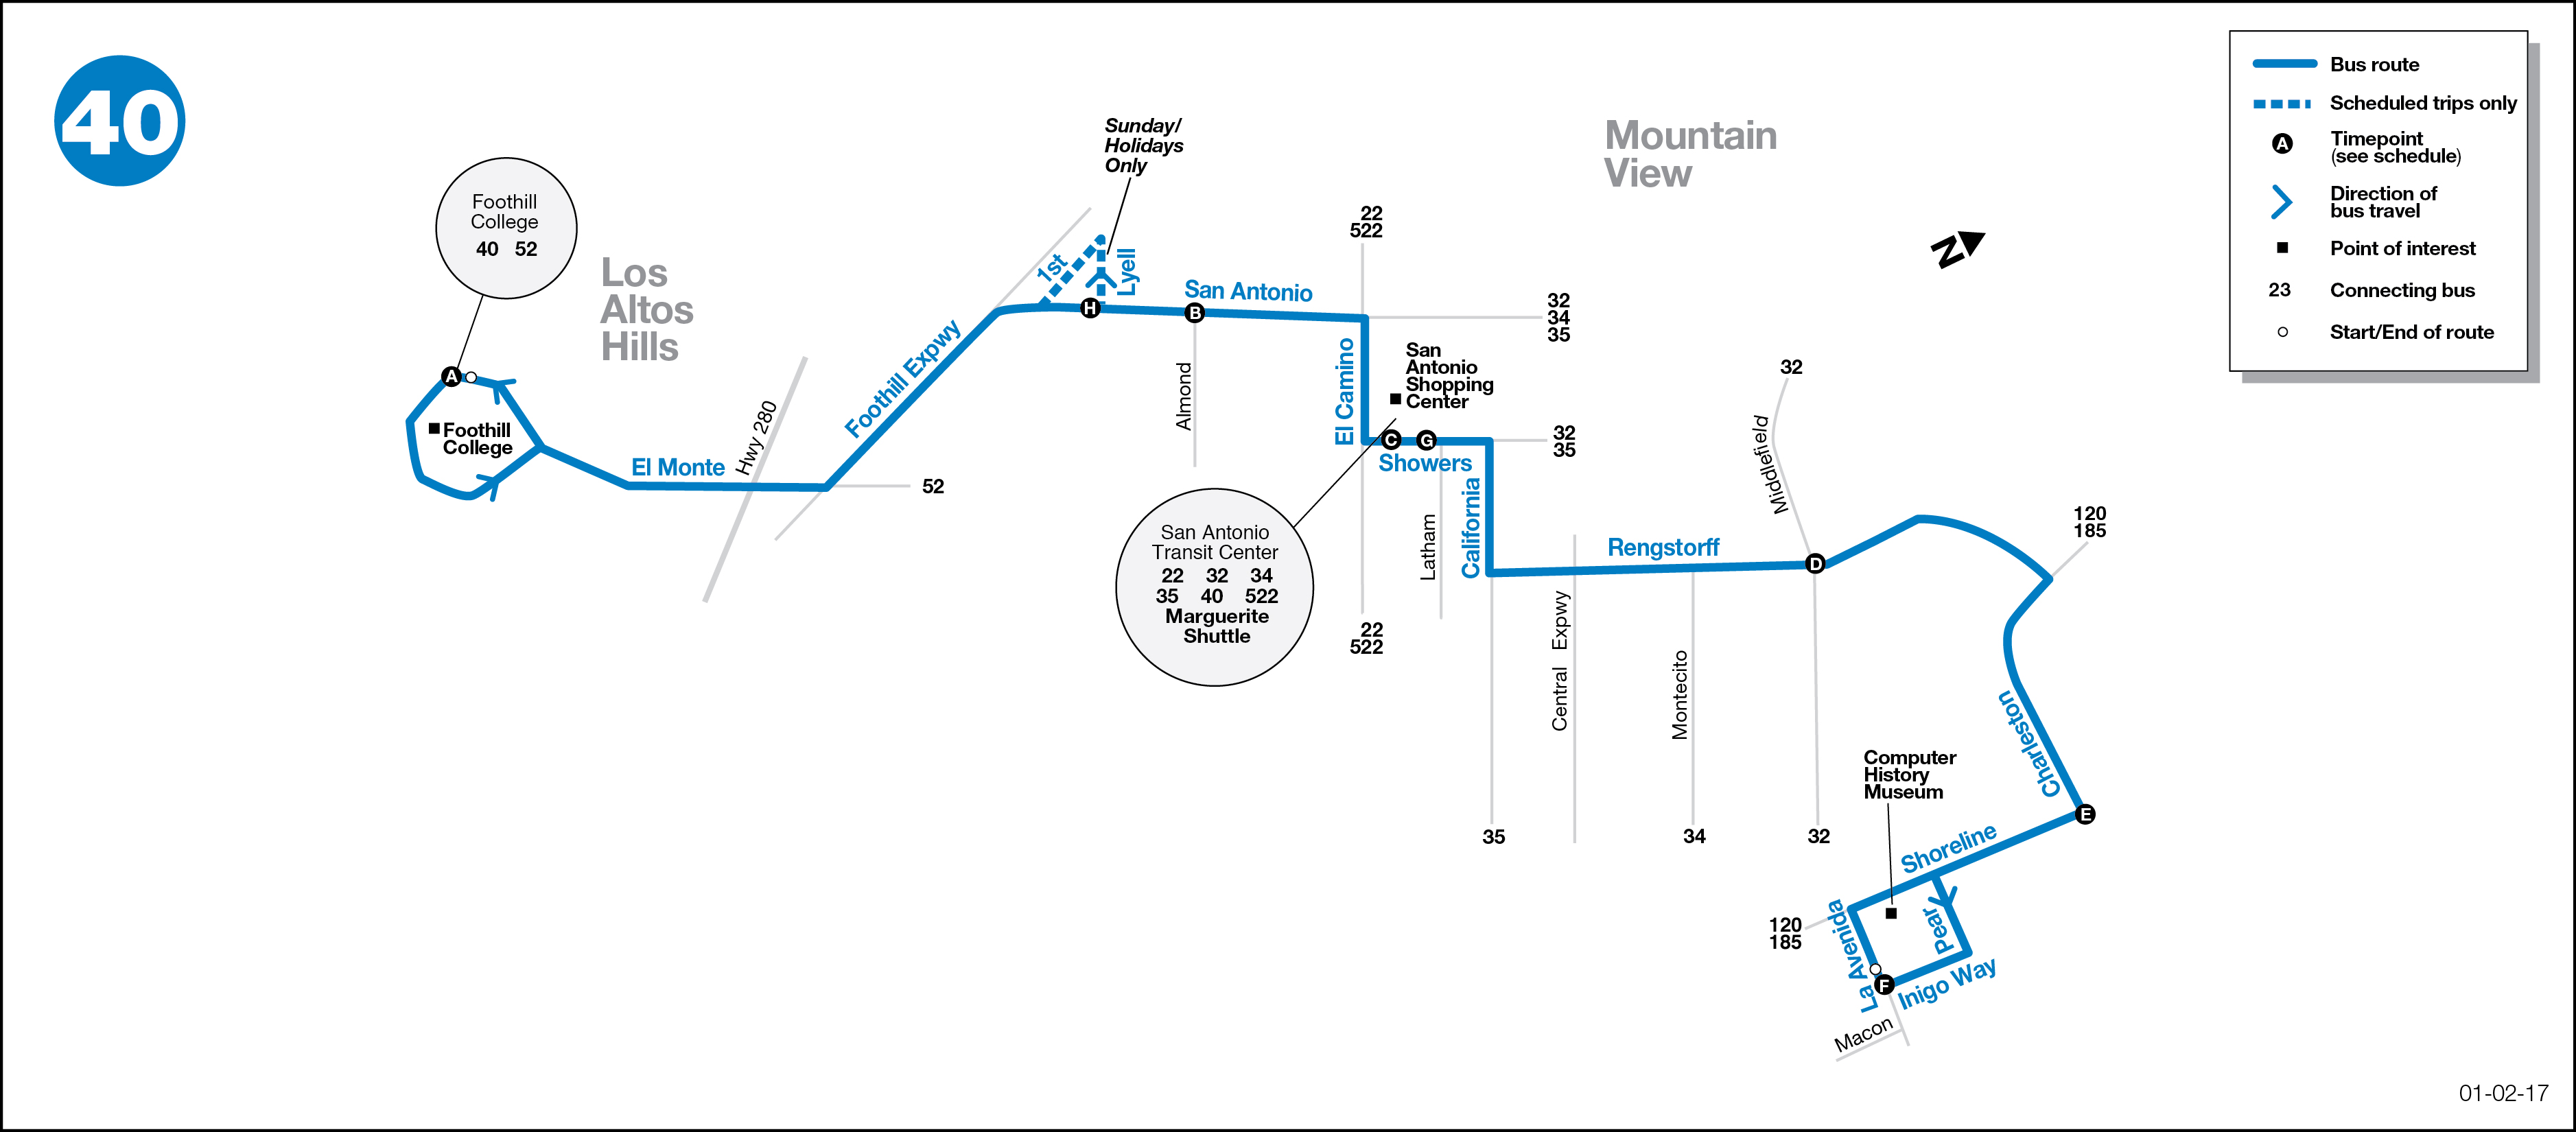 Bus Route Map 40 Bus Route   VTA   SF Bay Transit